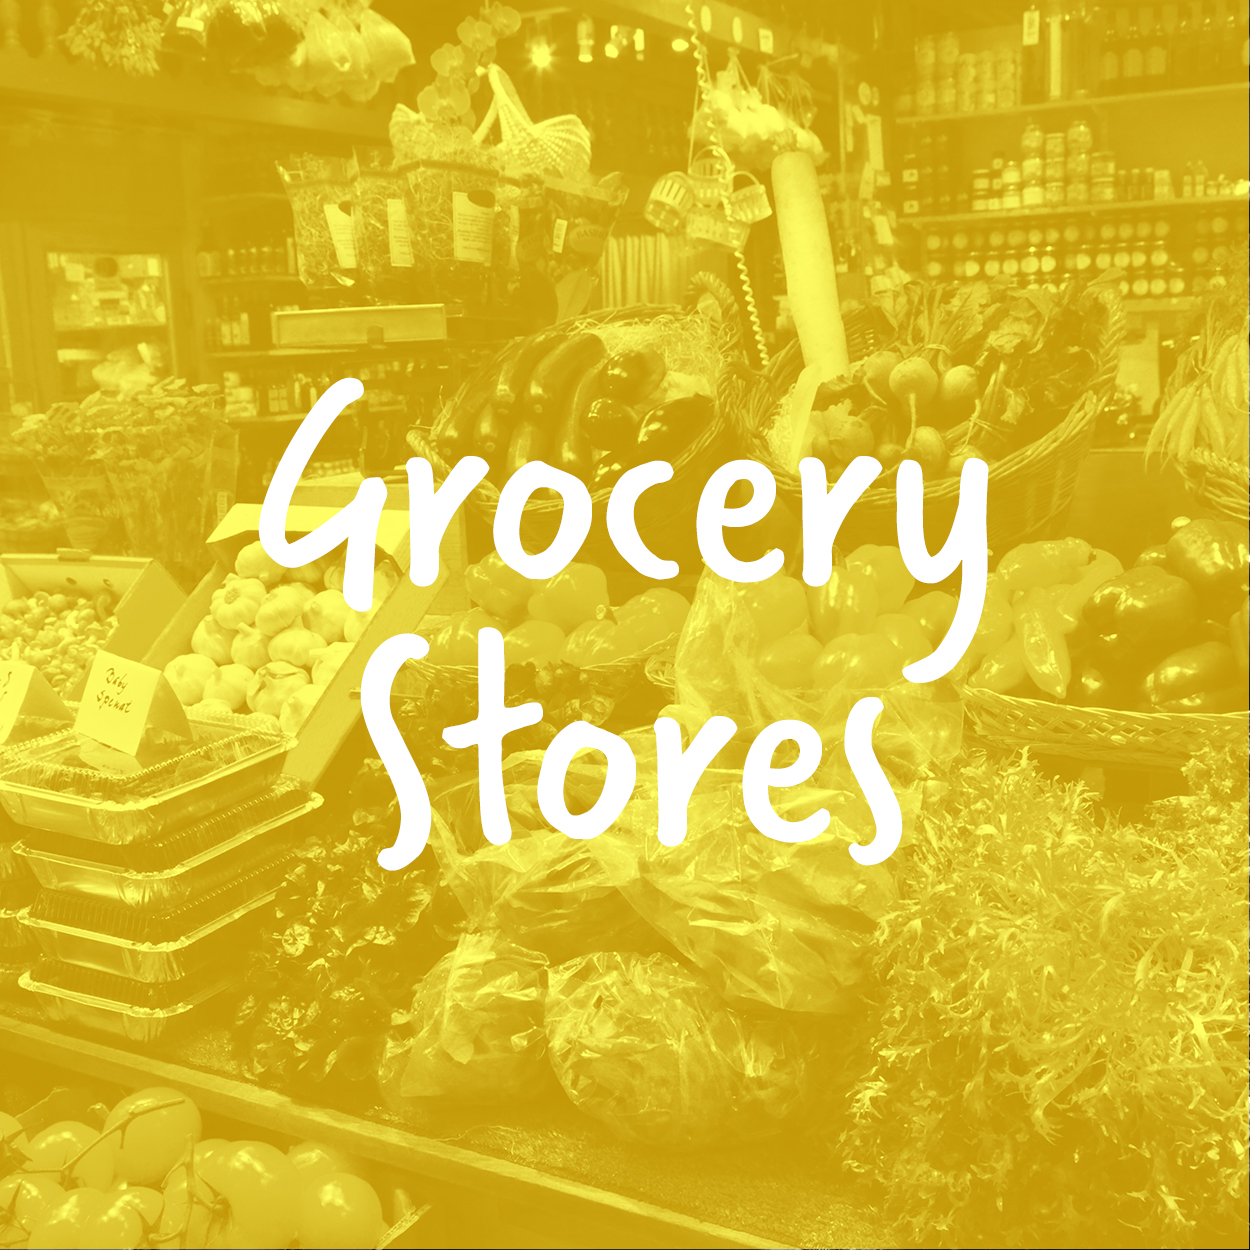 grocery-stores.jpg